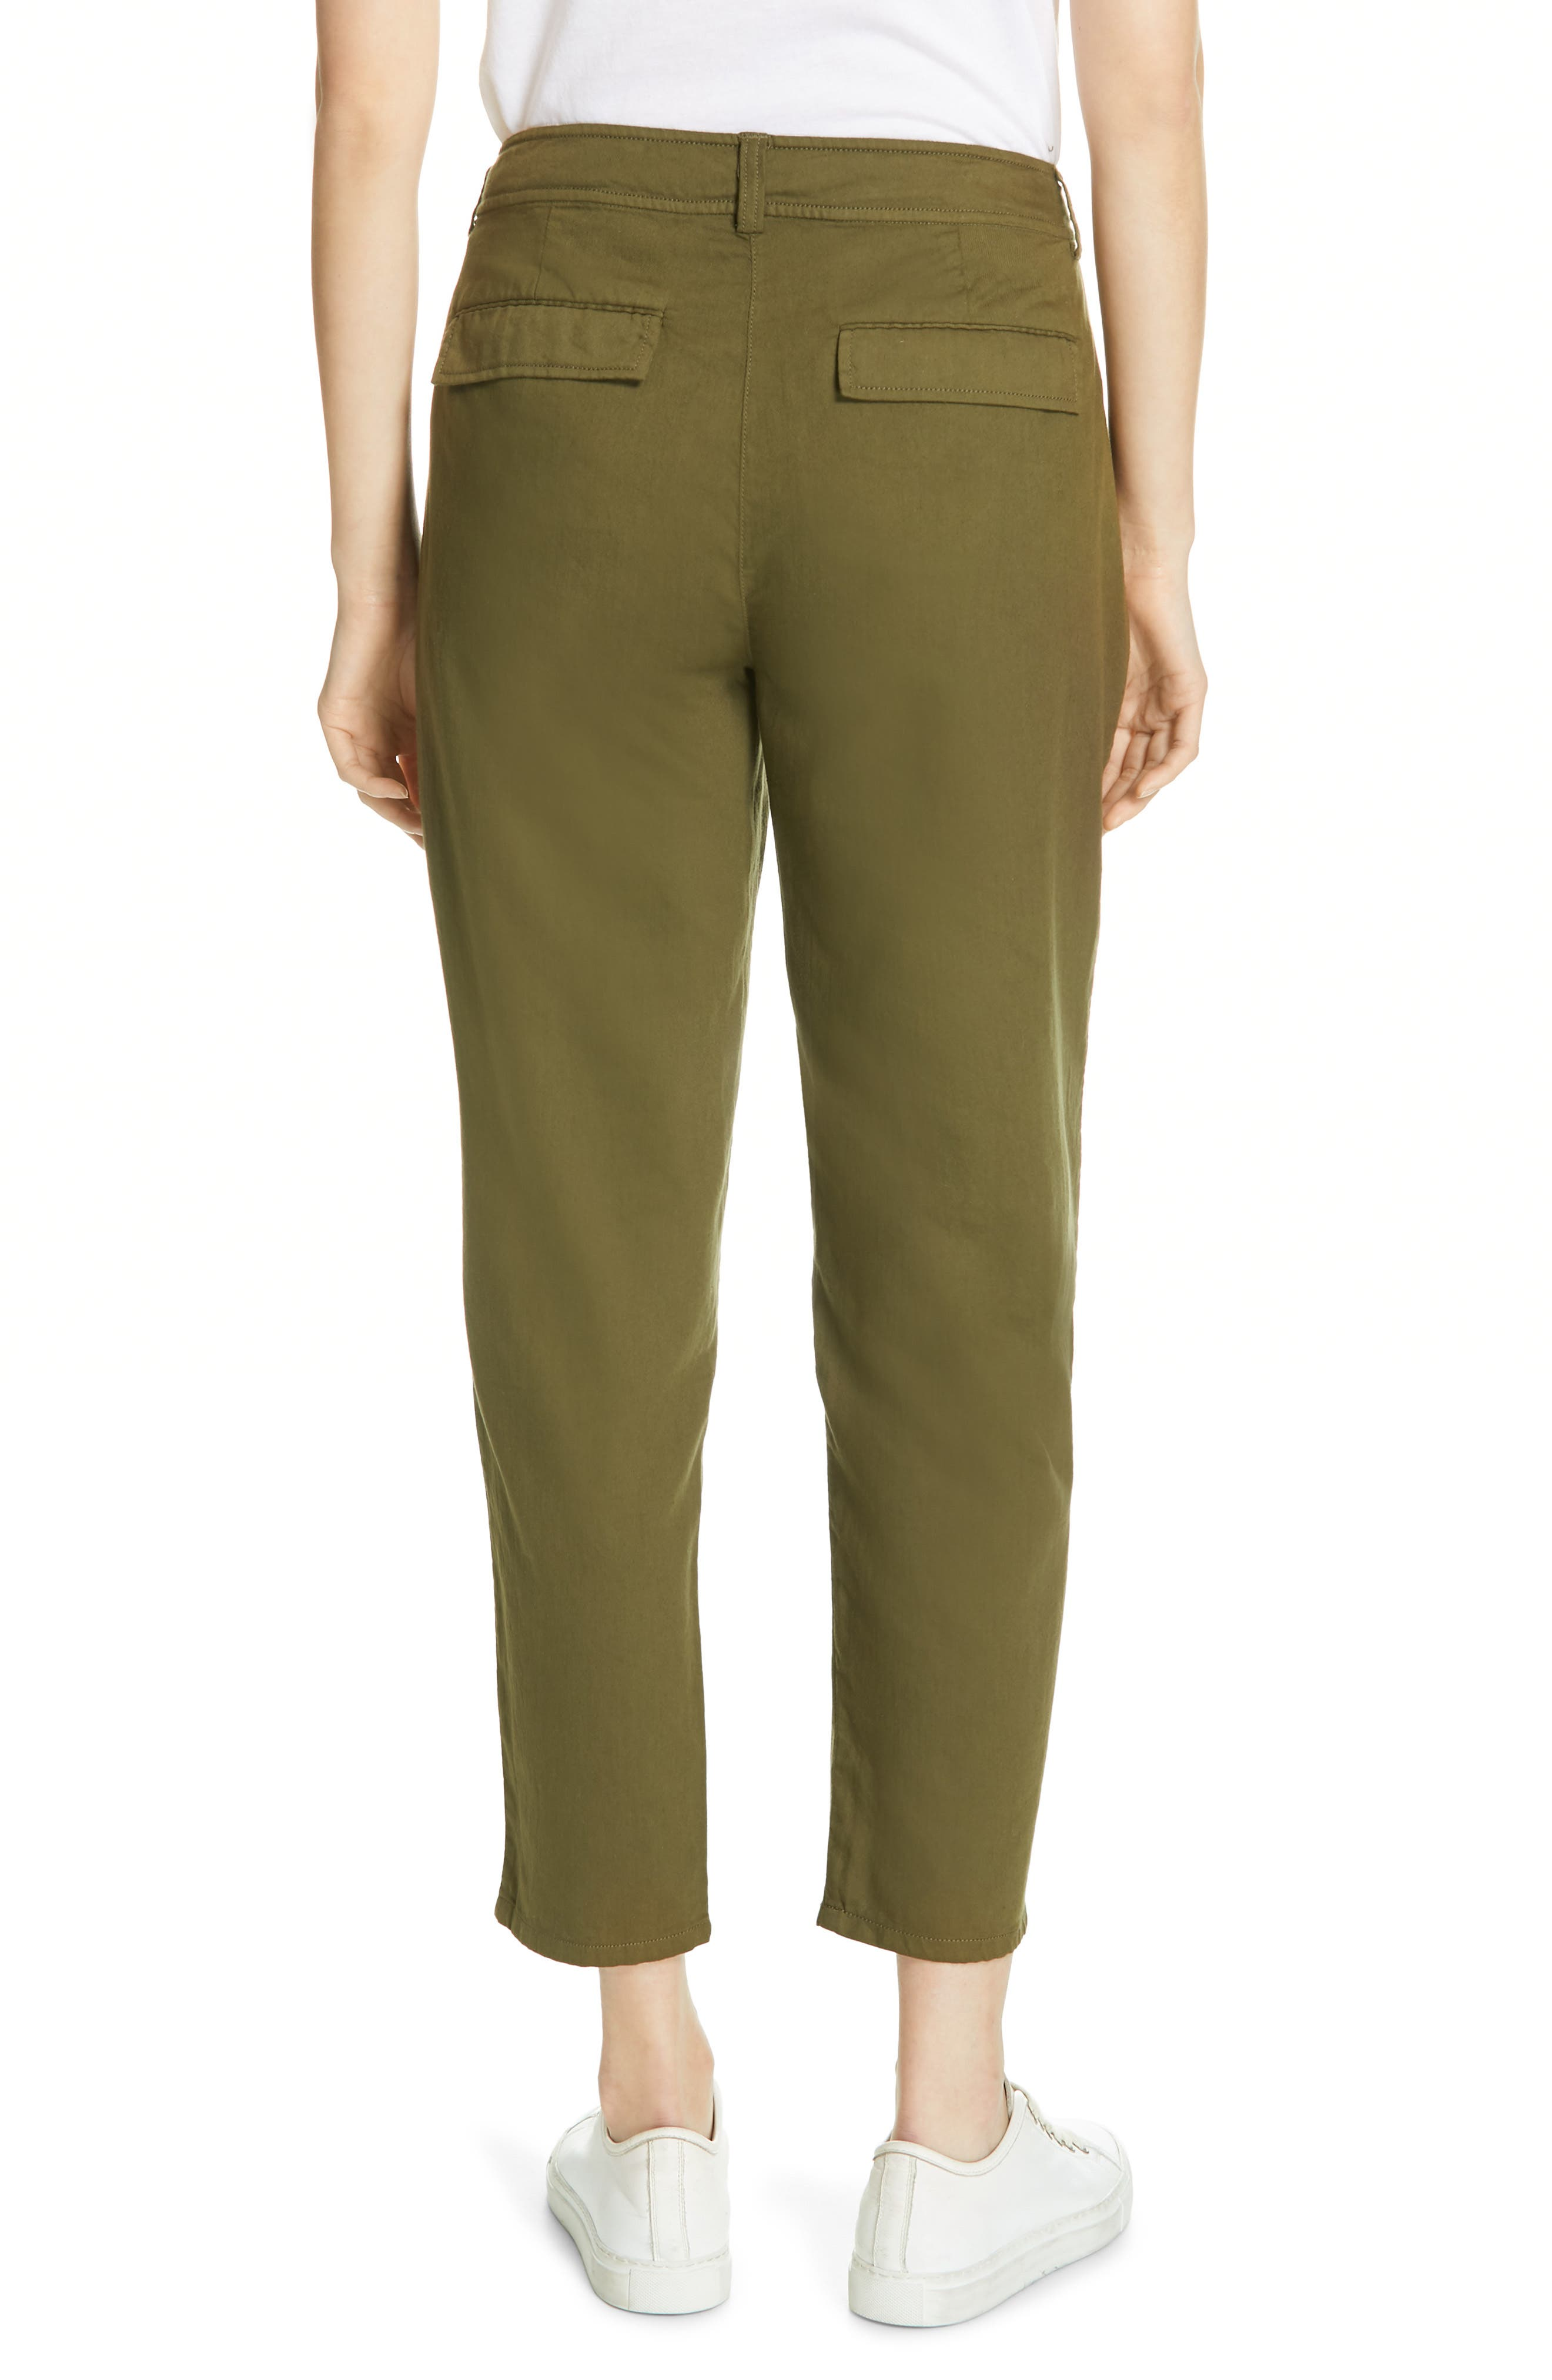 EILEEN FISHER, Slouchy Ankle Pants, Alternate thumbnail 2, color, OLIVE